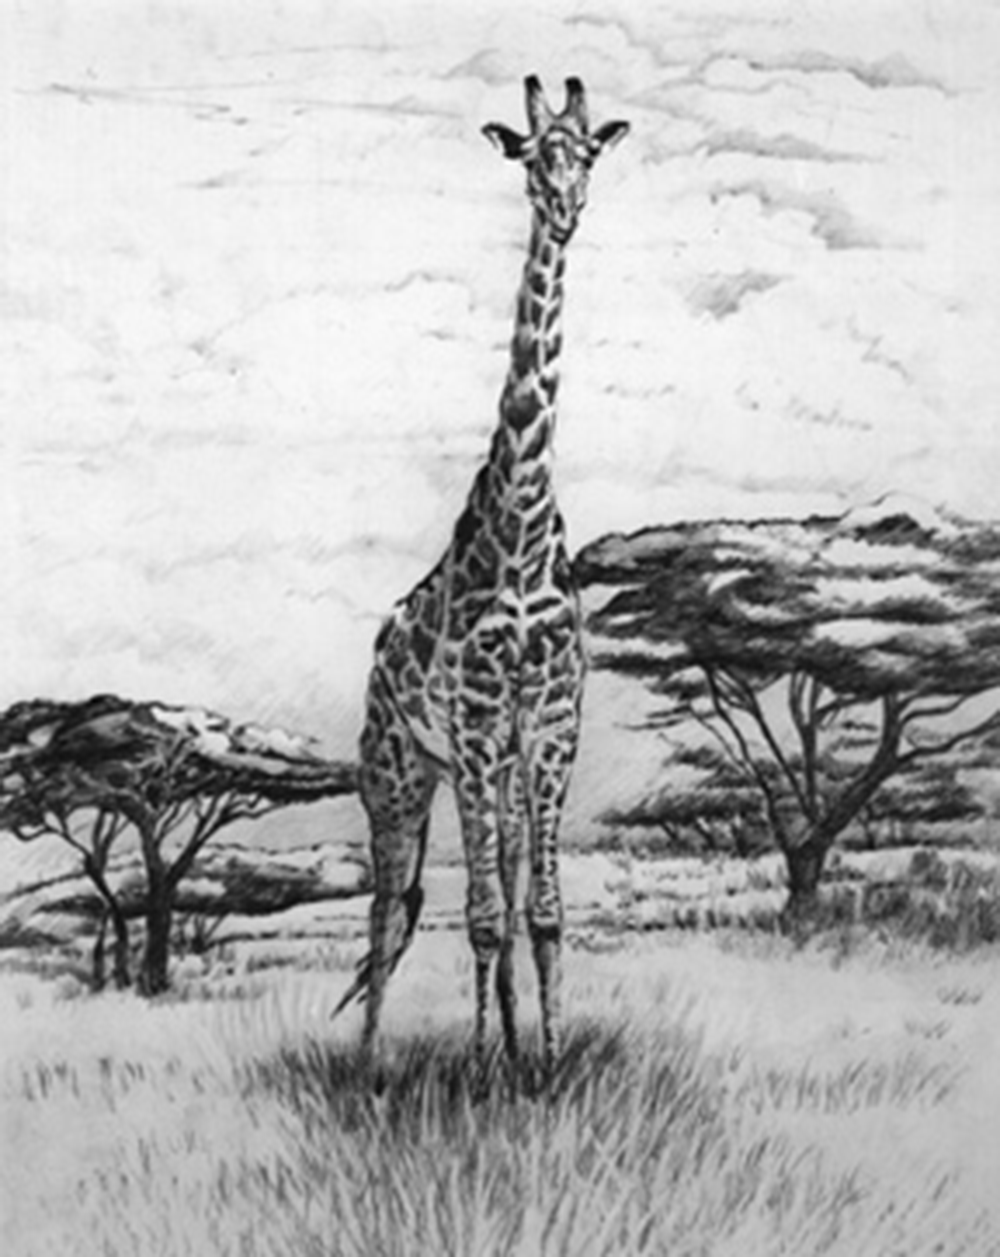 Giraffe lithograph by Synnove available on Etsy shop Gift of the Sun